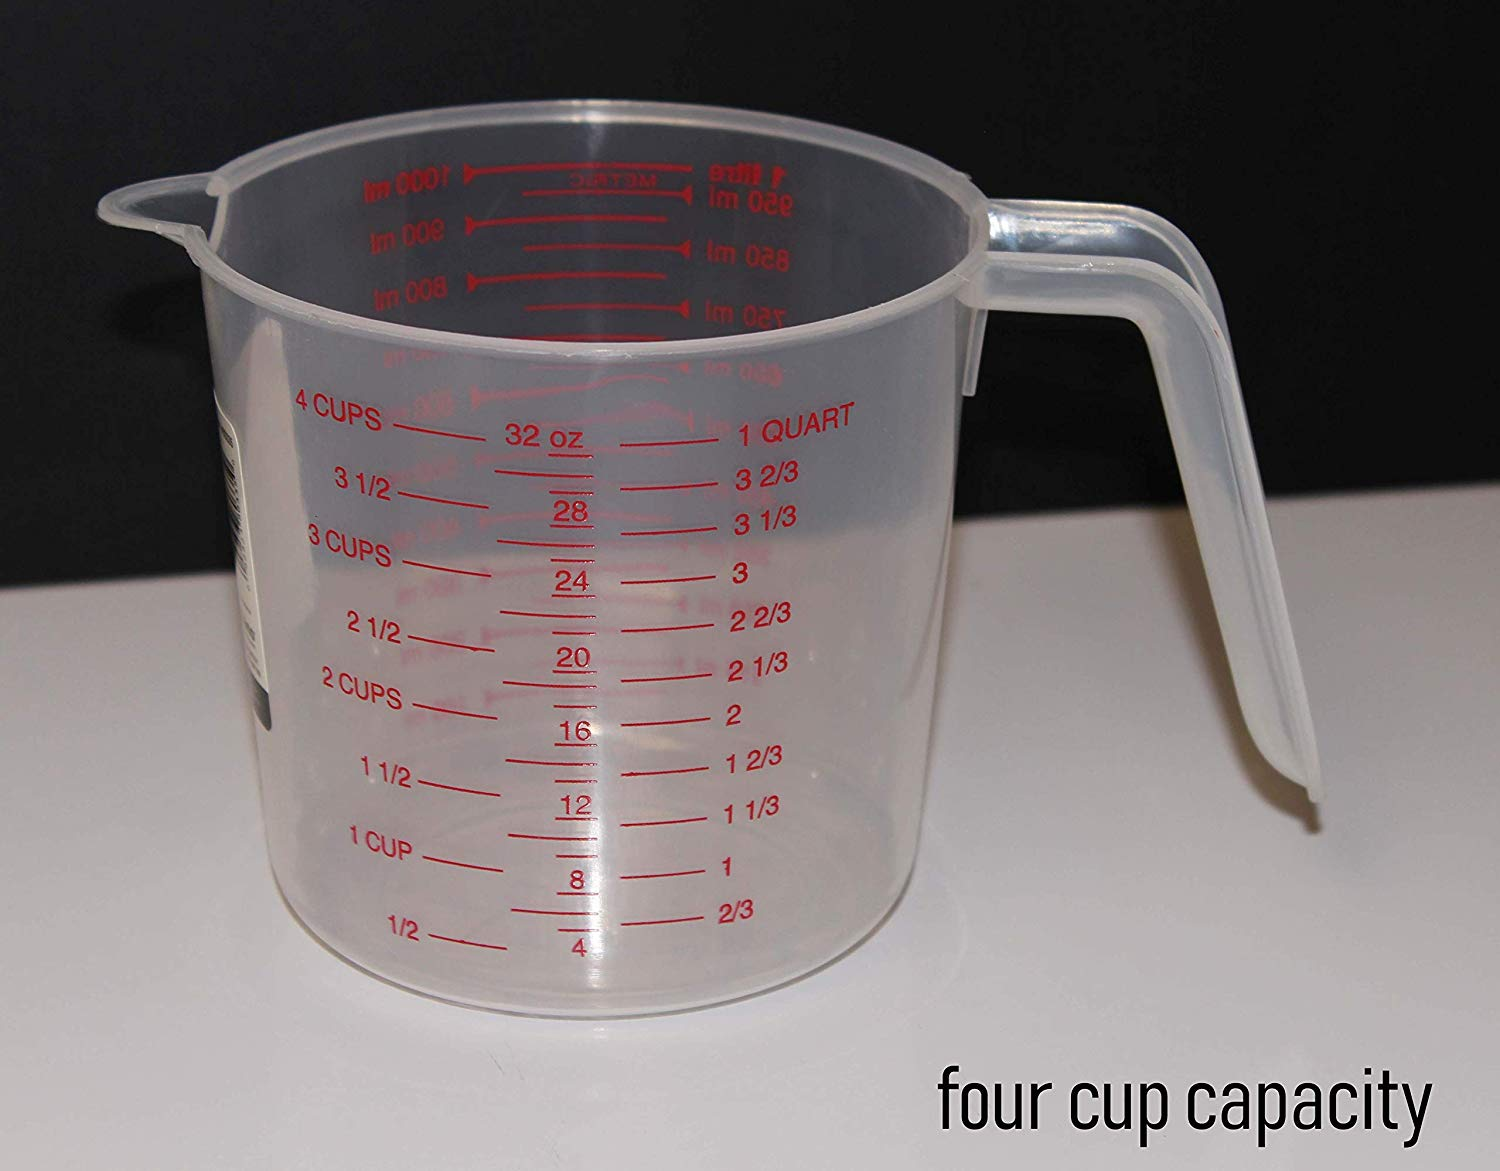 Clear Plastic Measuring Cup 4 Cup Capacity For Measuring